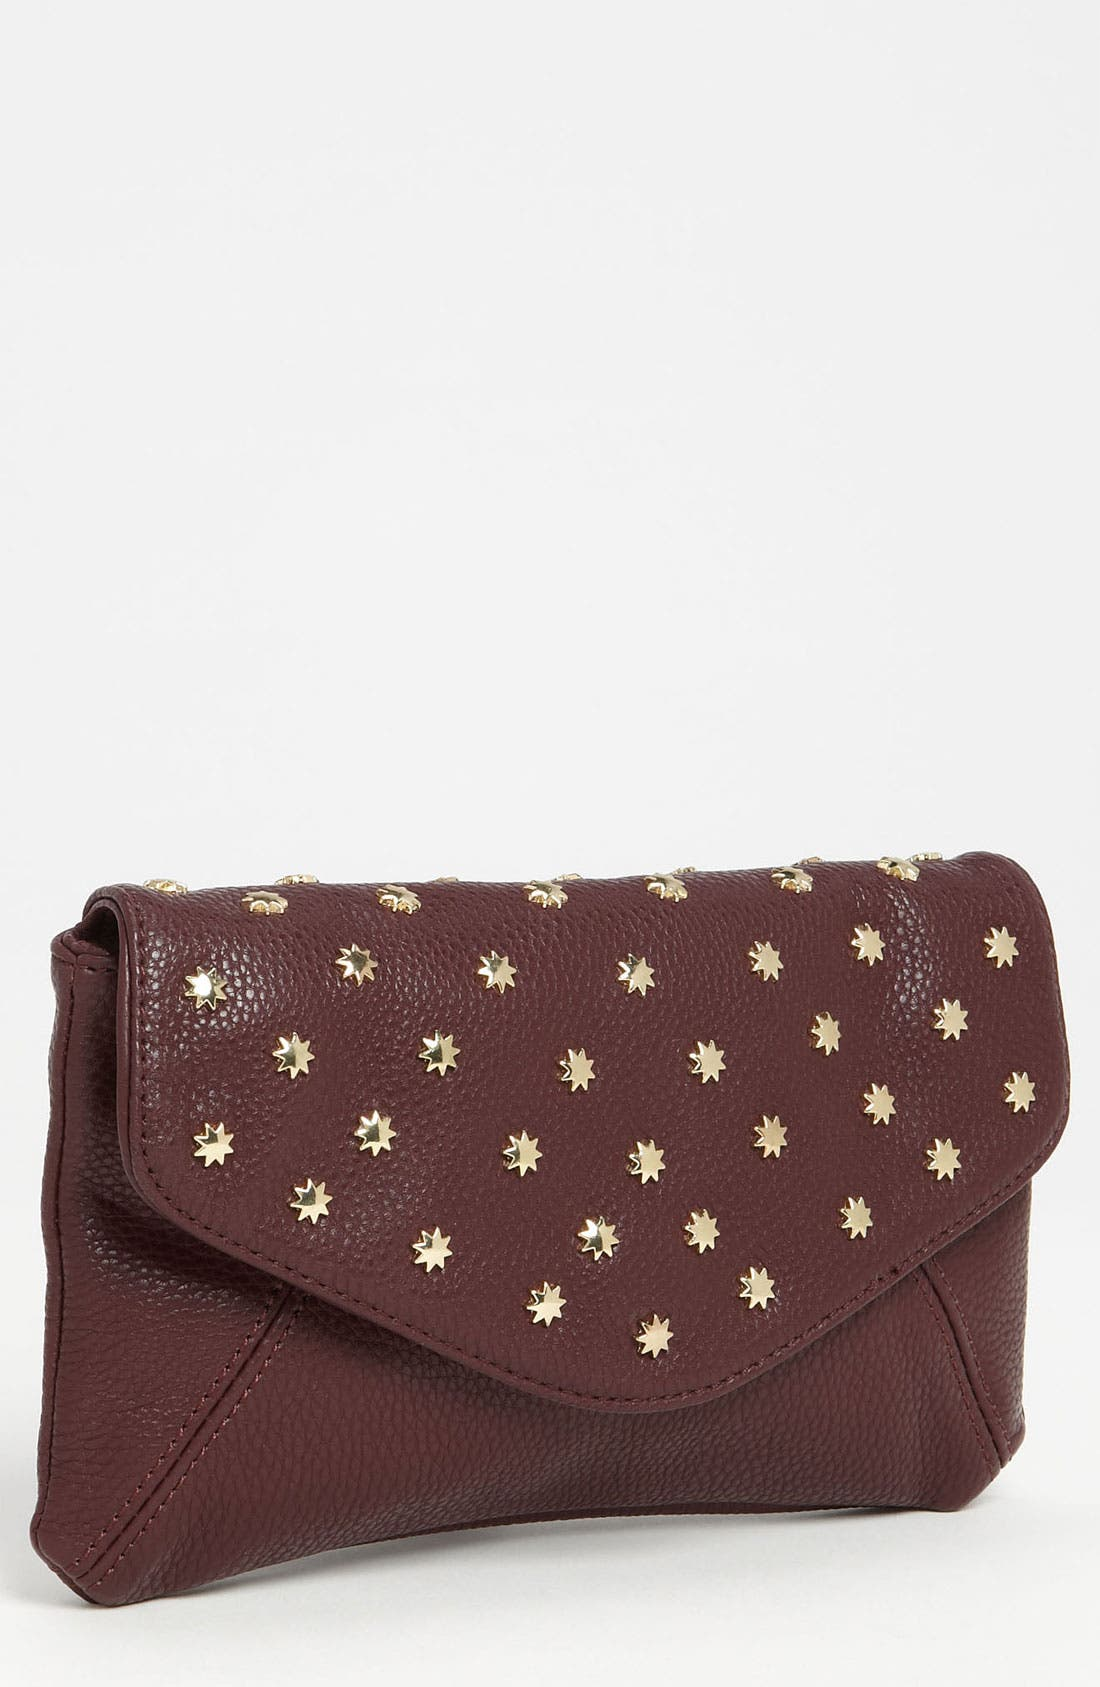 Main Image - Deux Lux 'Star Gazer' Clutch